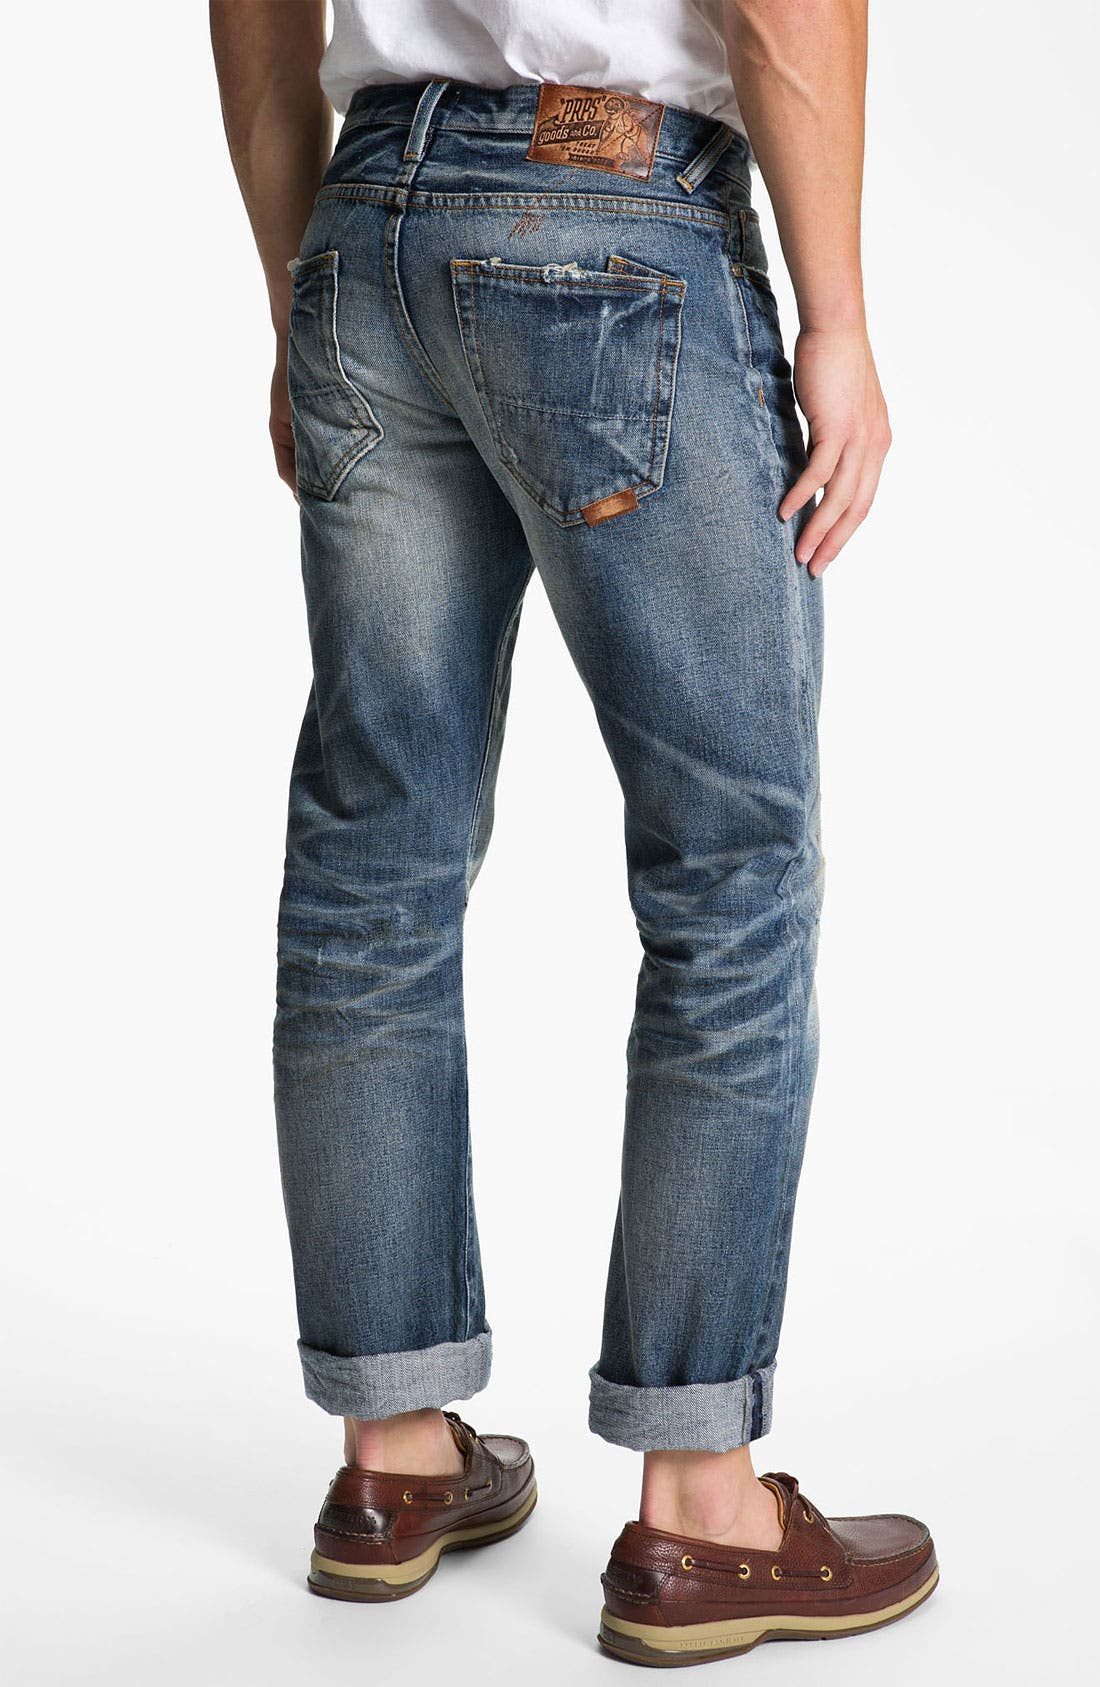 Alternate Image 1 Selected - PRPS 'Barracuda' Straight Leg Jeans (Light Wash)